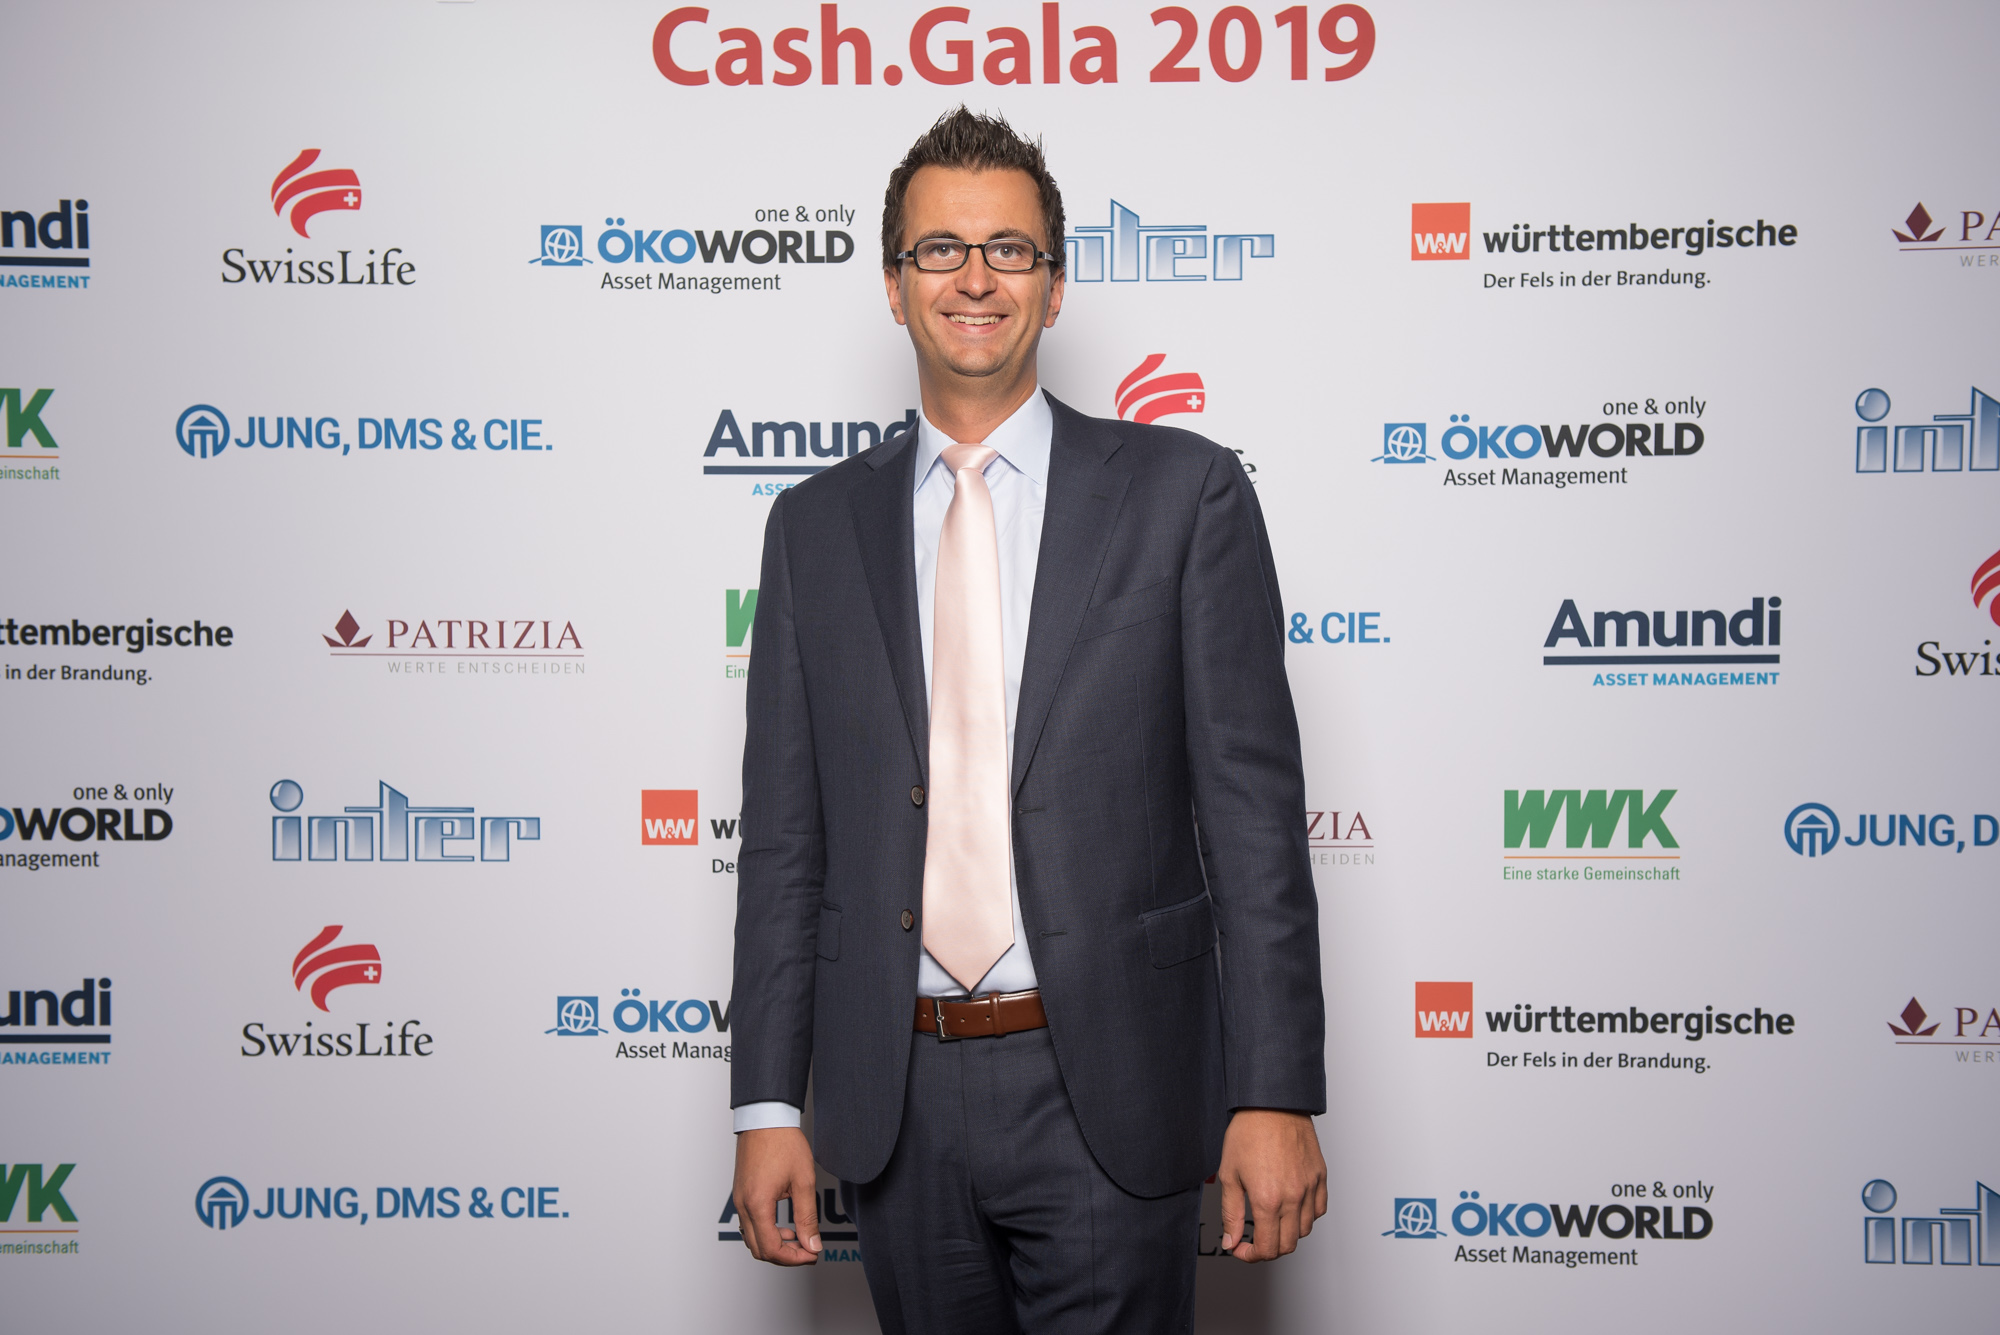 CashGala 2019 0038 AM DSC7054 in Cash.Gala 2019